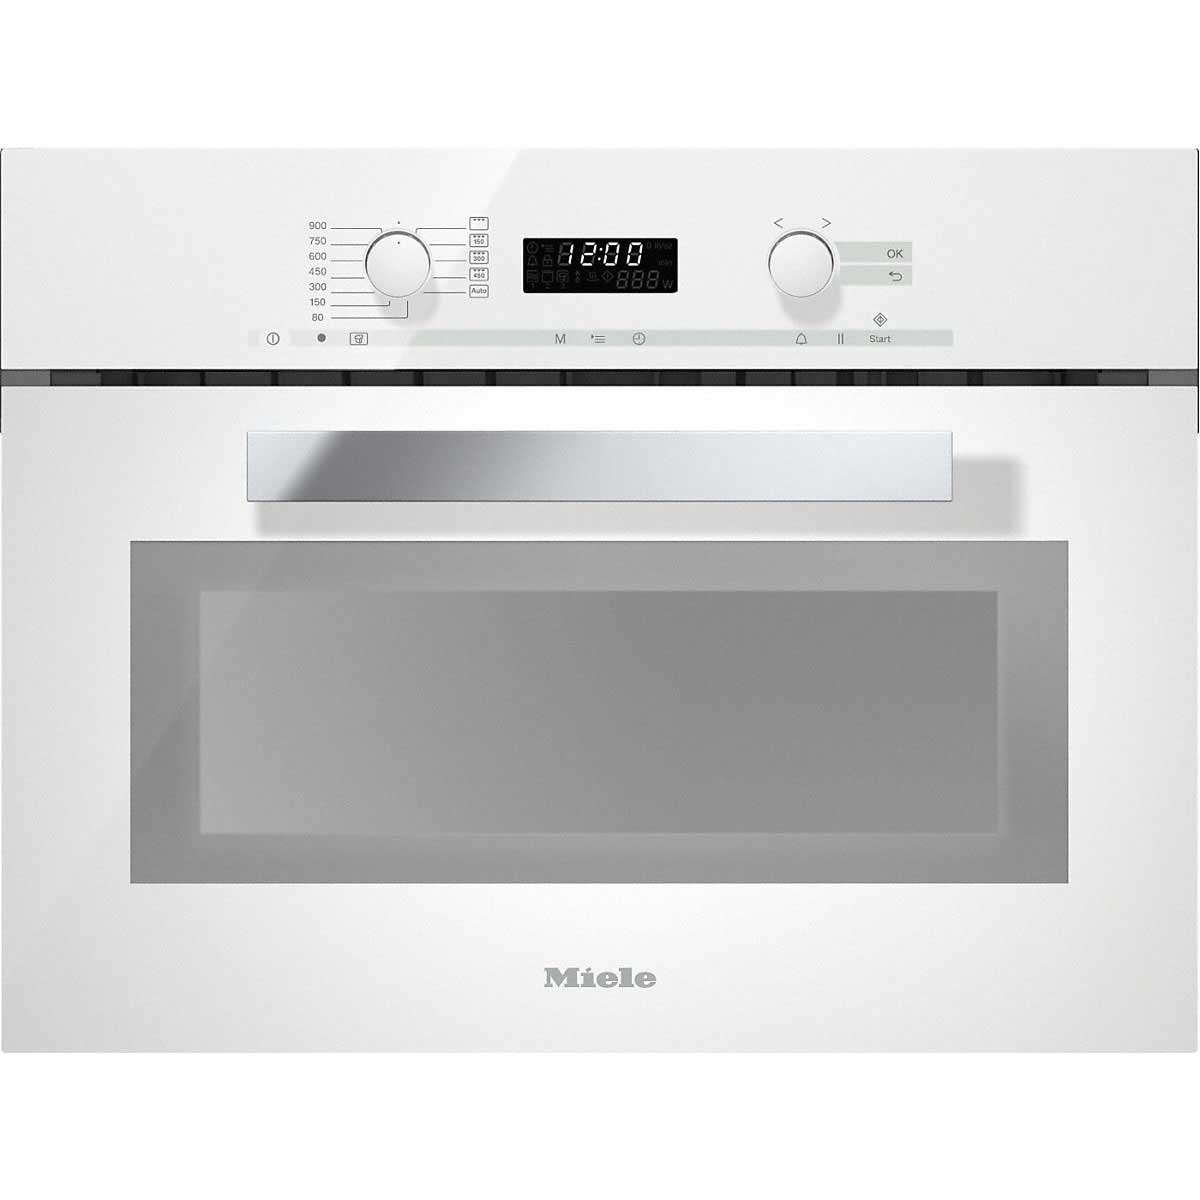 Miele M 6262 Tc D Brws Built In Microwave Oven